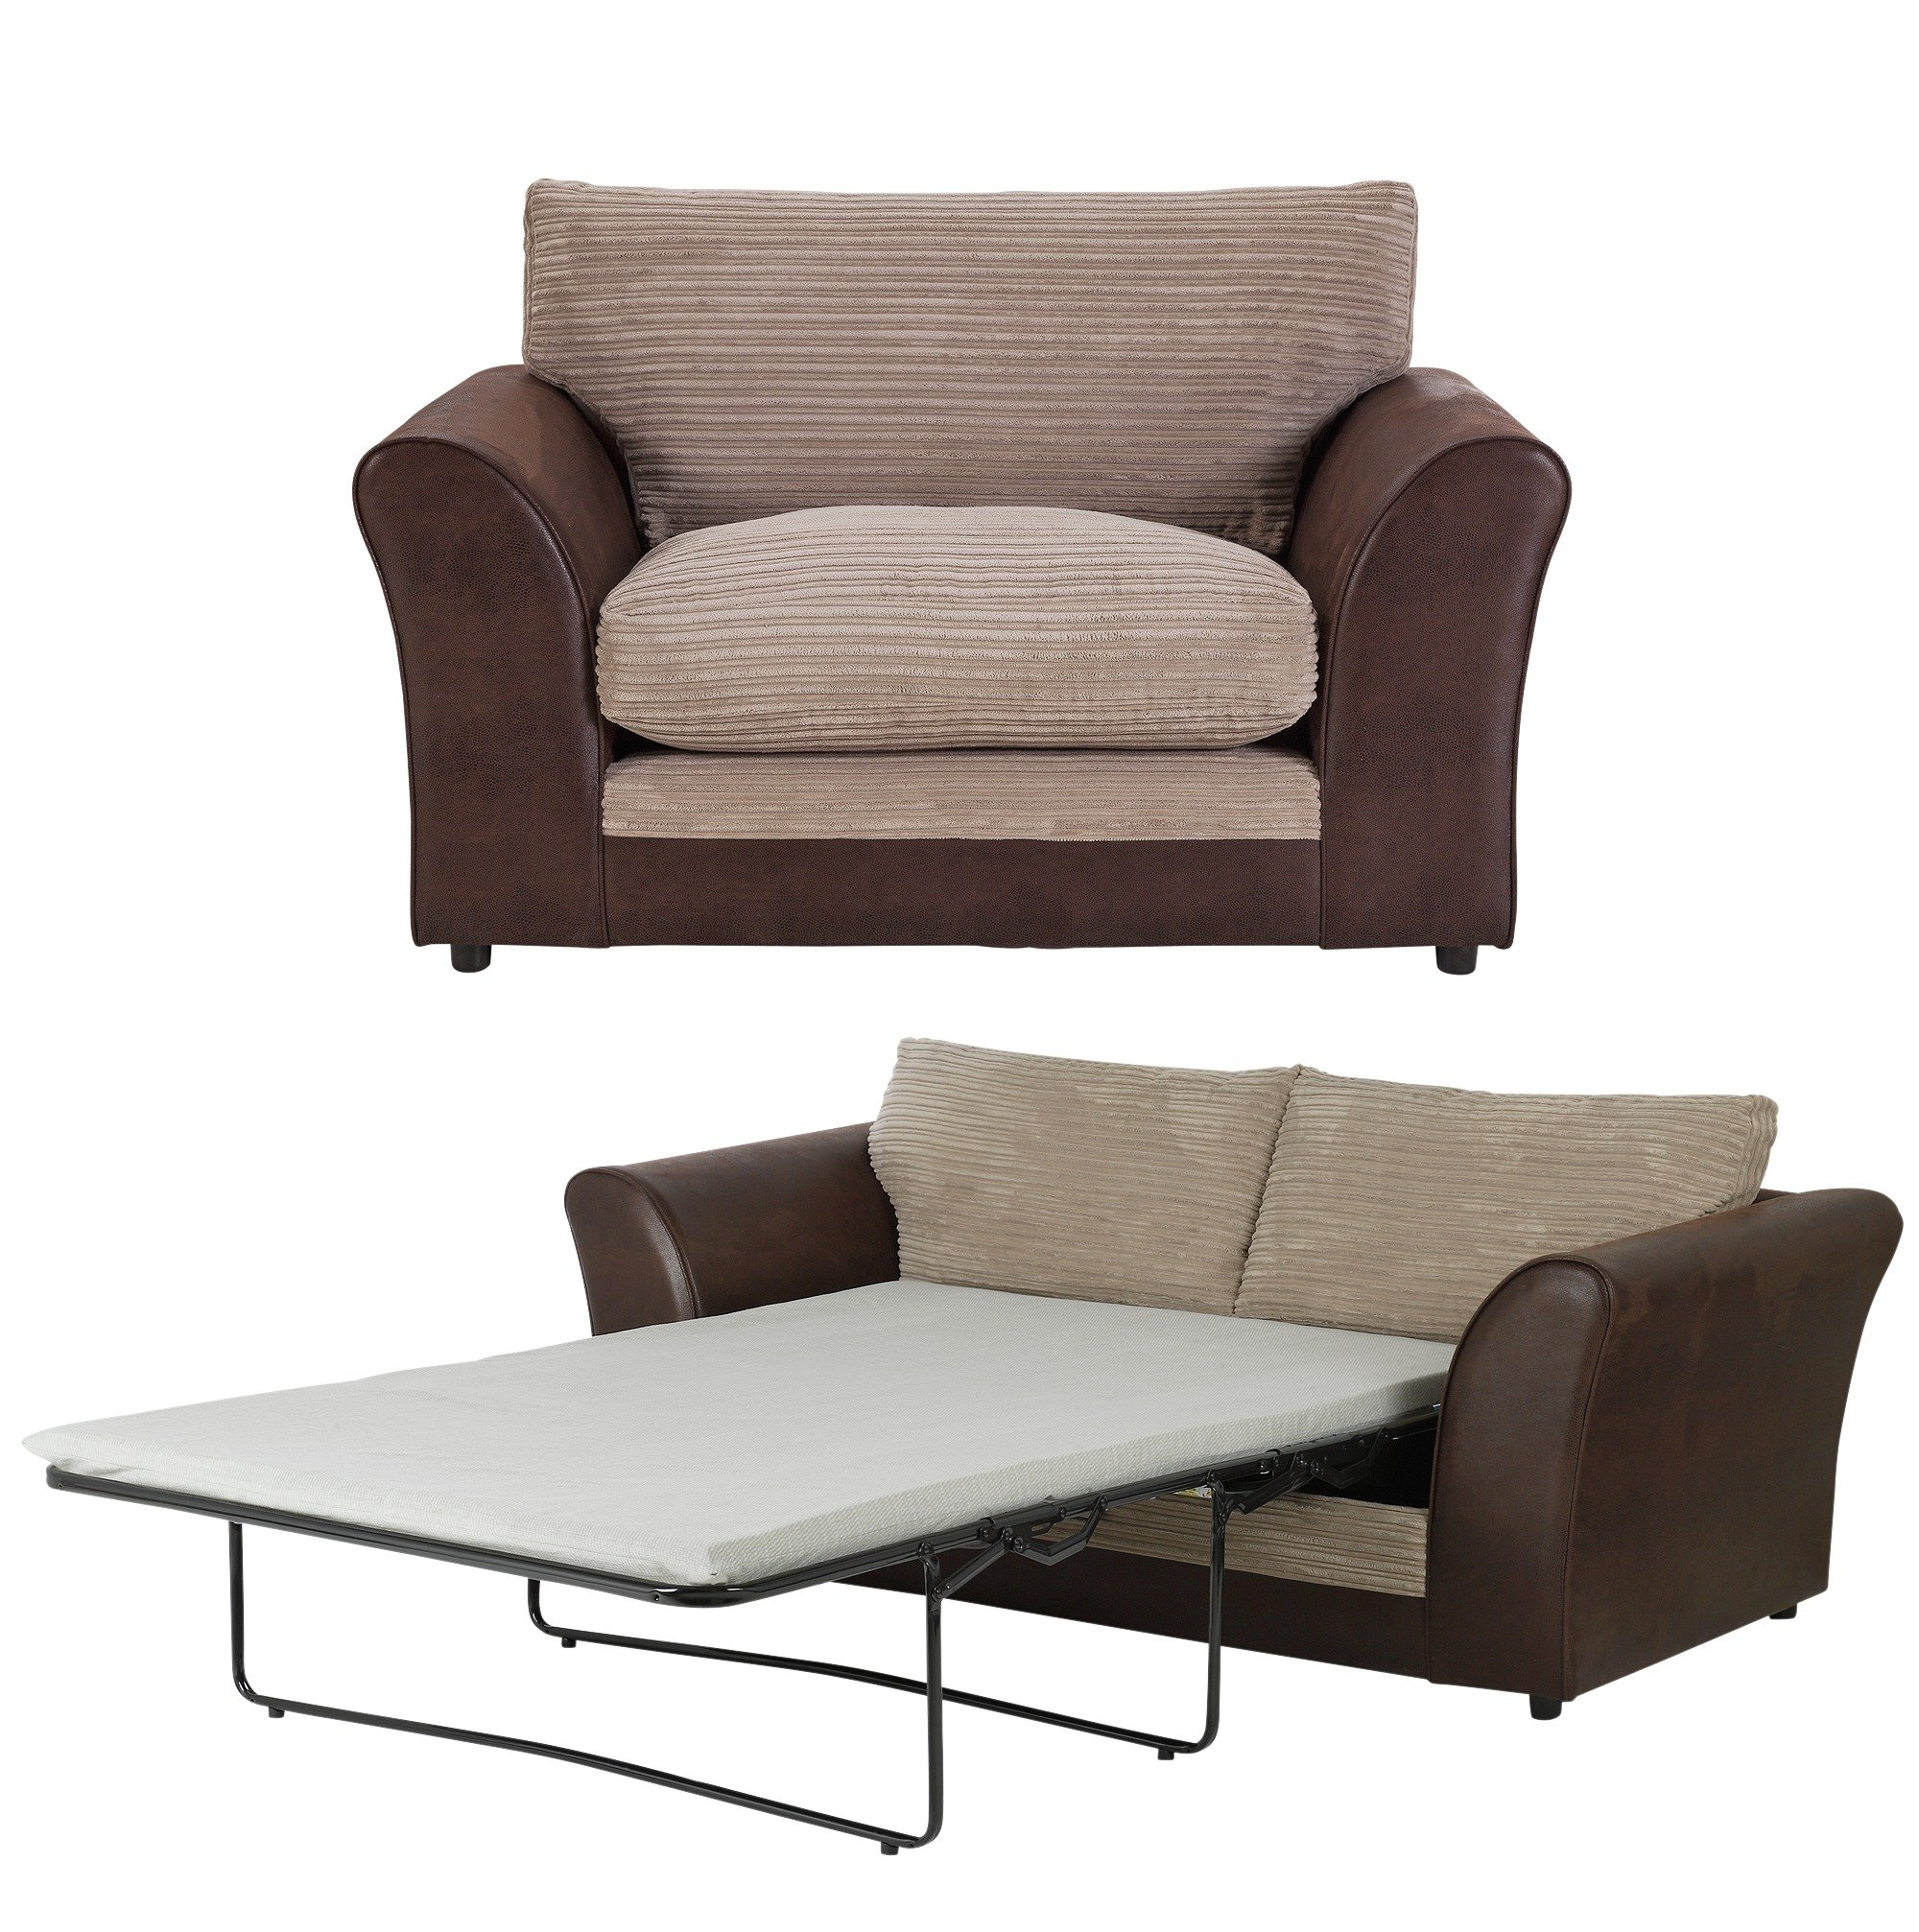 sofa beds argos co uk thomas payne rv tri fold home harley 2 seater bed and cuddle chair natural